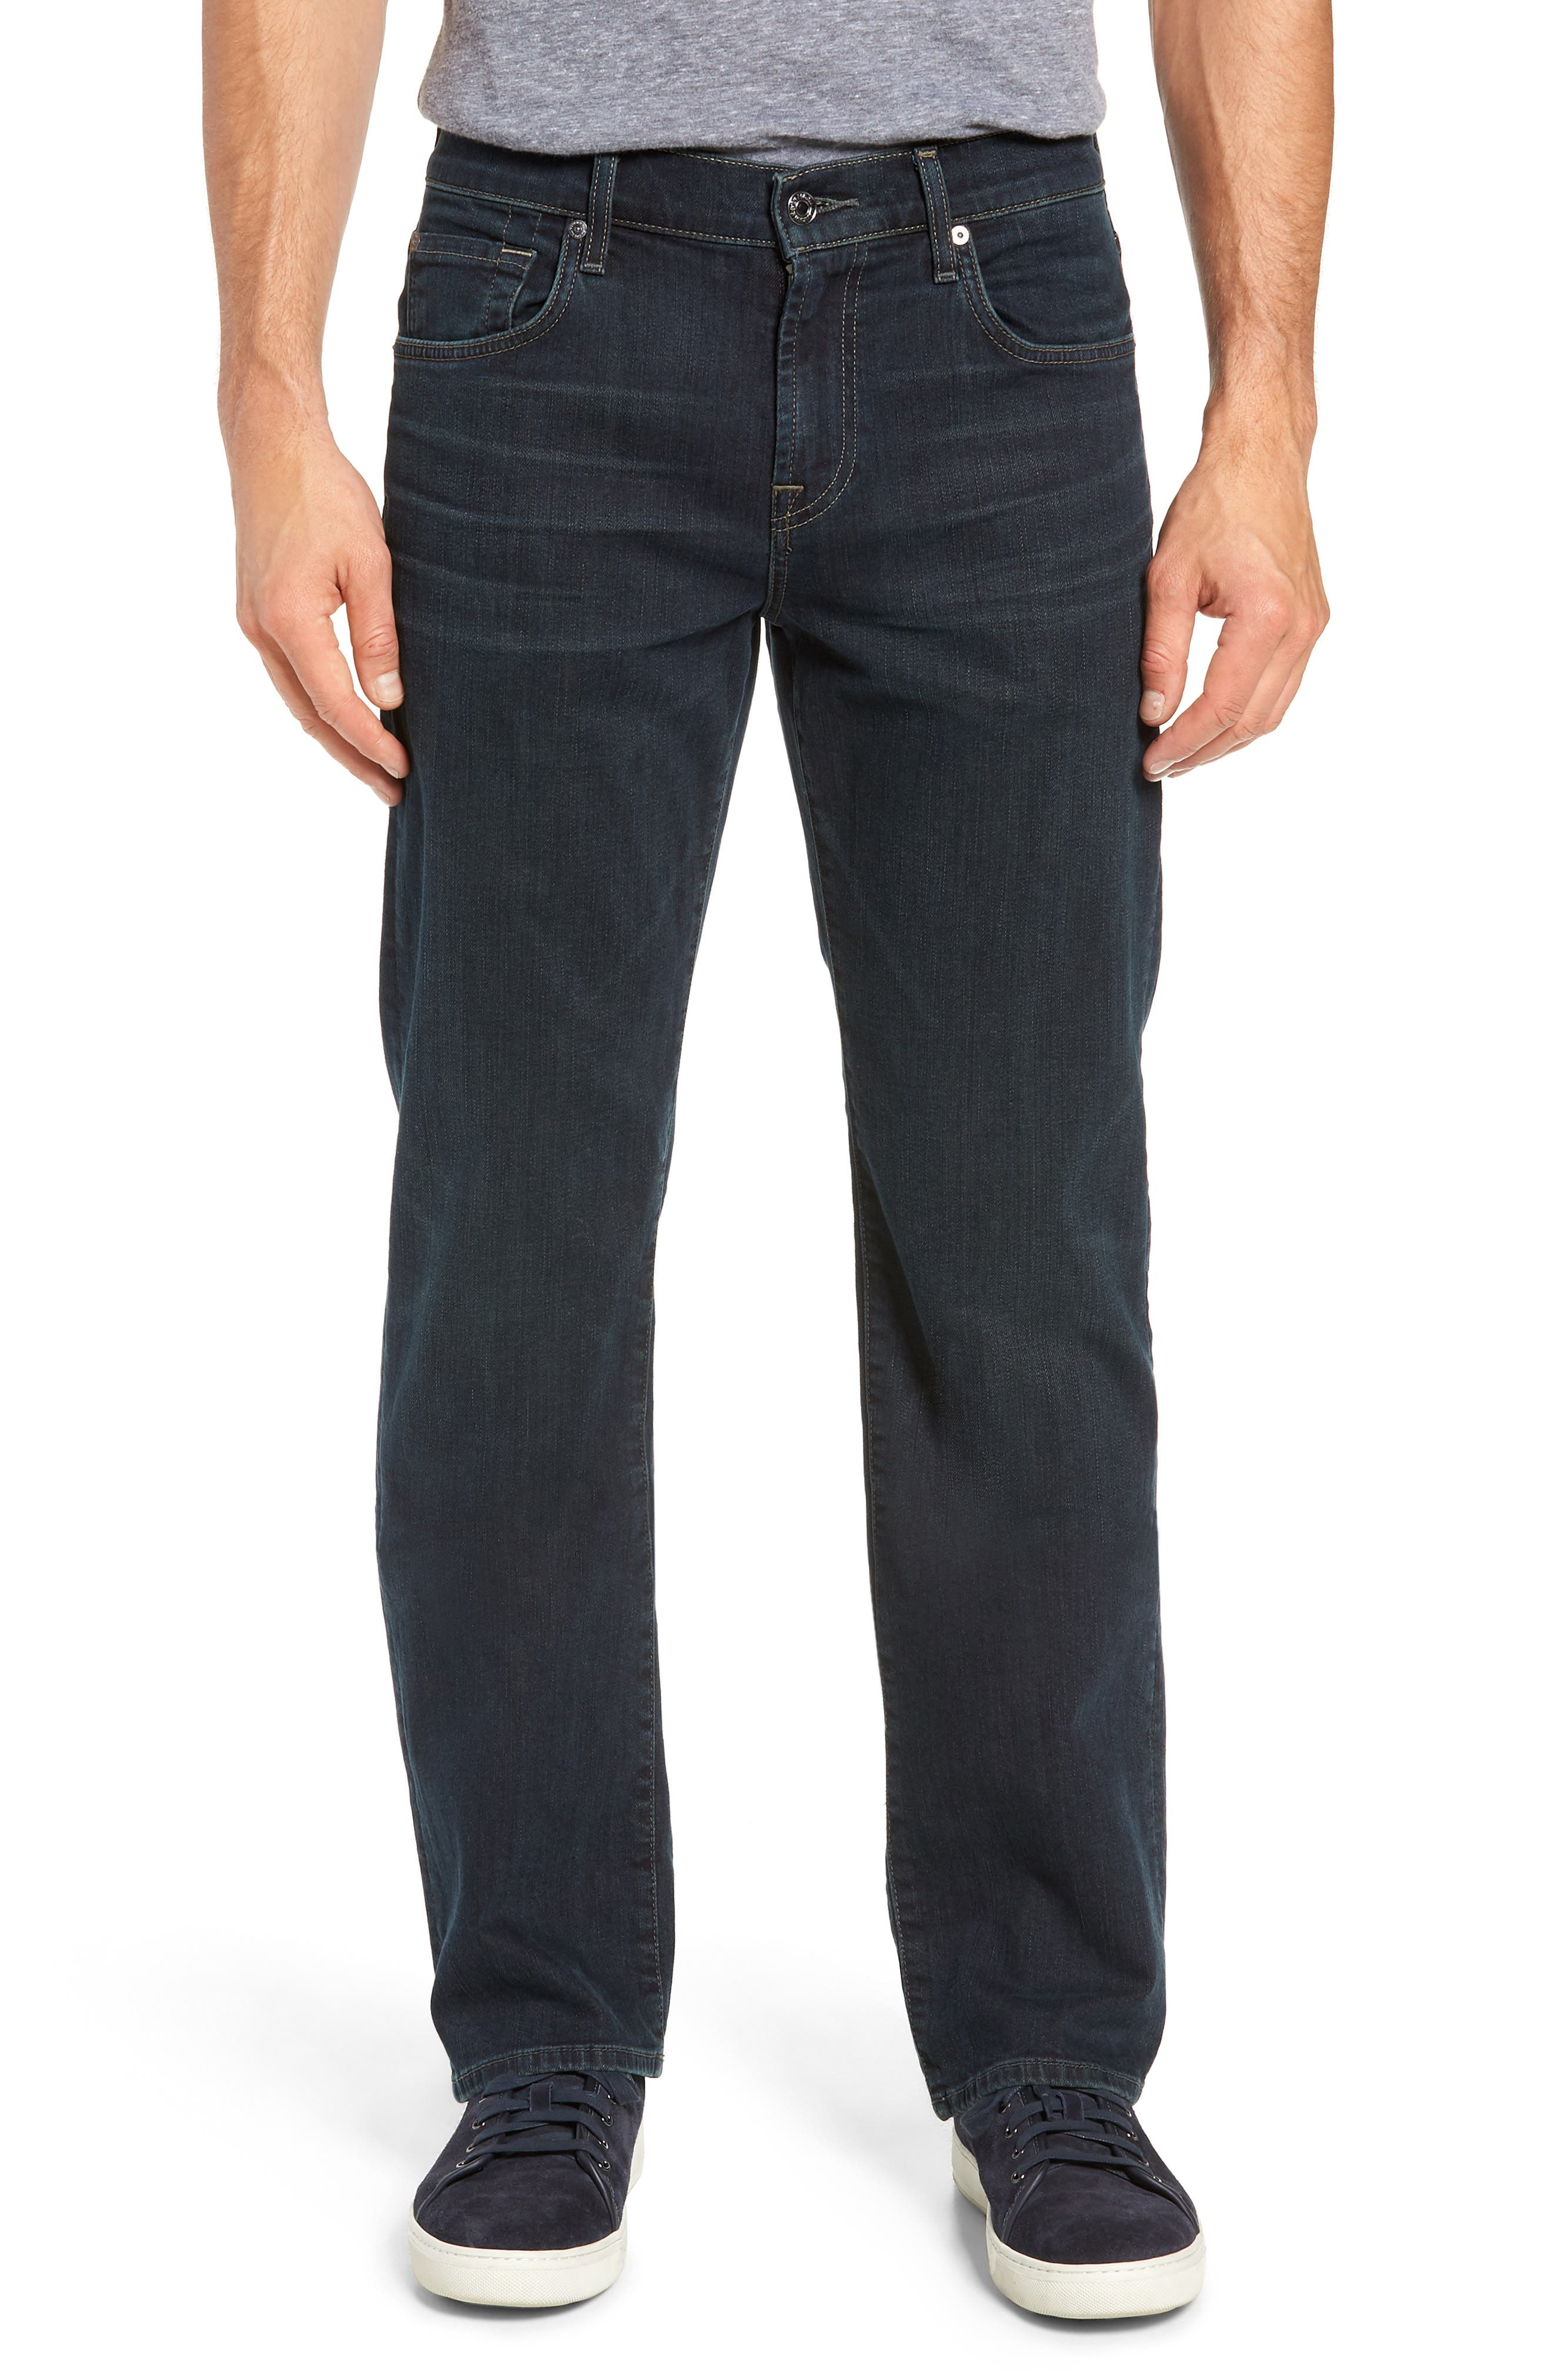 Austyn Relaxed Fit Jeans,                         Main,                         color, CONTRA